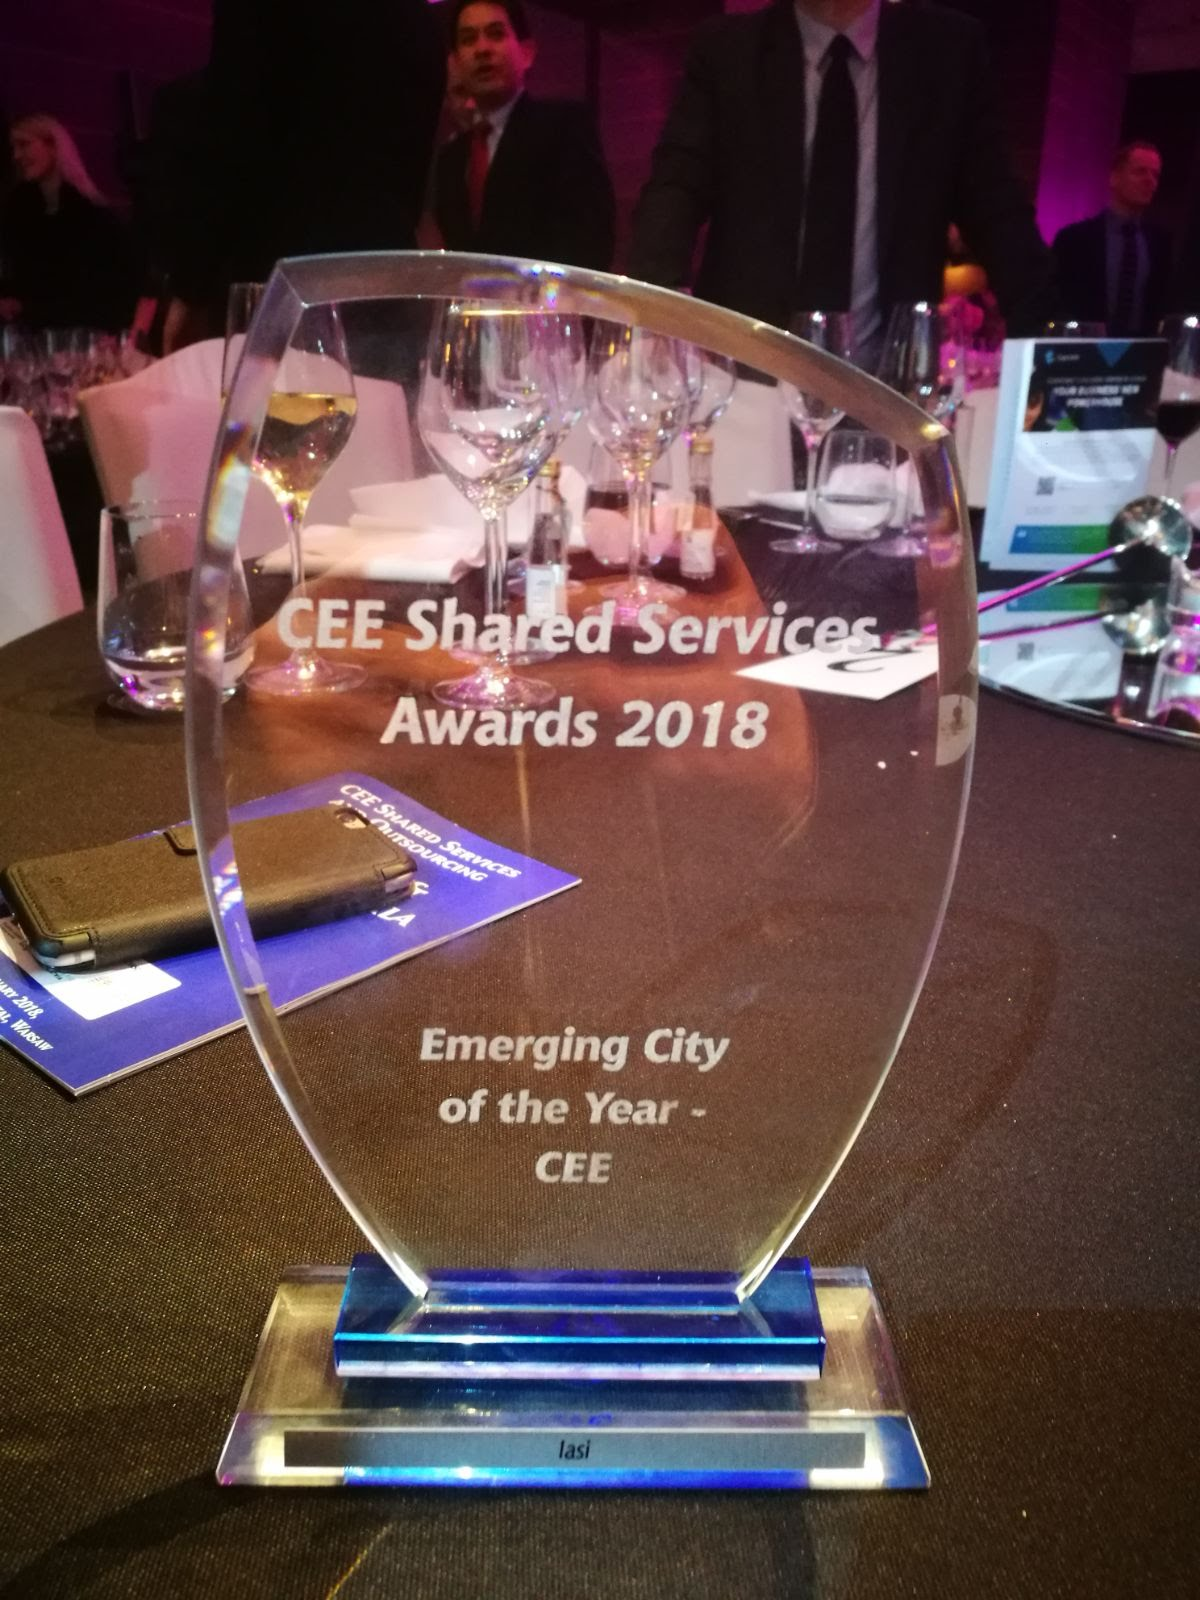 CEE Shared Services and Outsourcing Awards Varsovia Premiu Iasi Emerging City 7